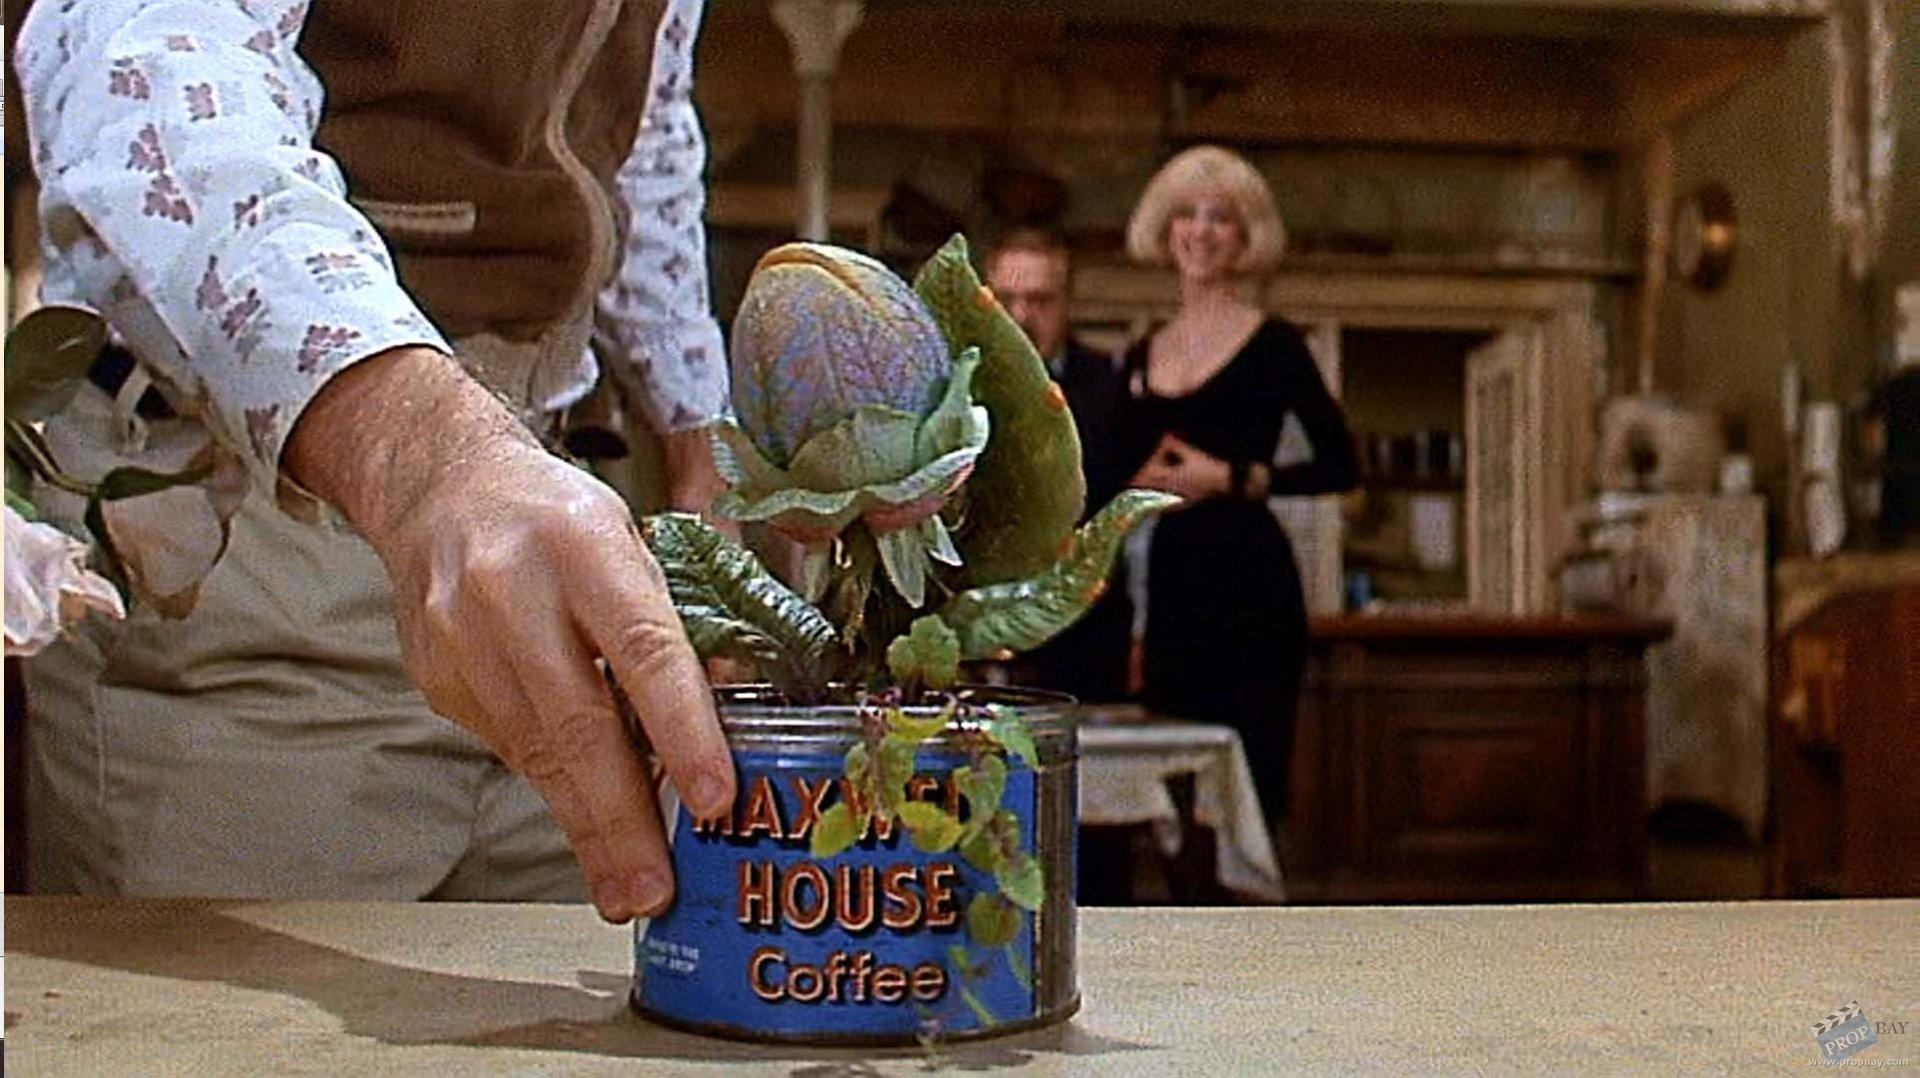 an analysis of the character of seymour in little shop of horrors Little shop of horrors cast of characters seymour mid-twenties and perhaps balding a little our insecure, naive, put-upon, florist's clerk hero above all, he's a.